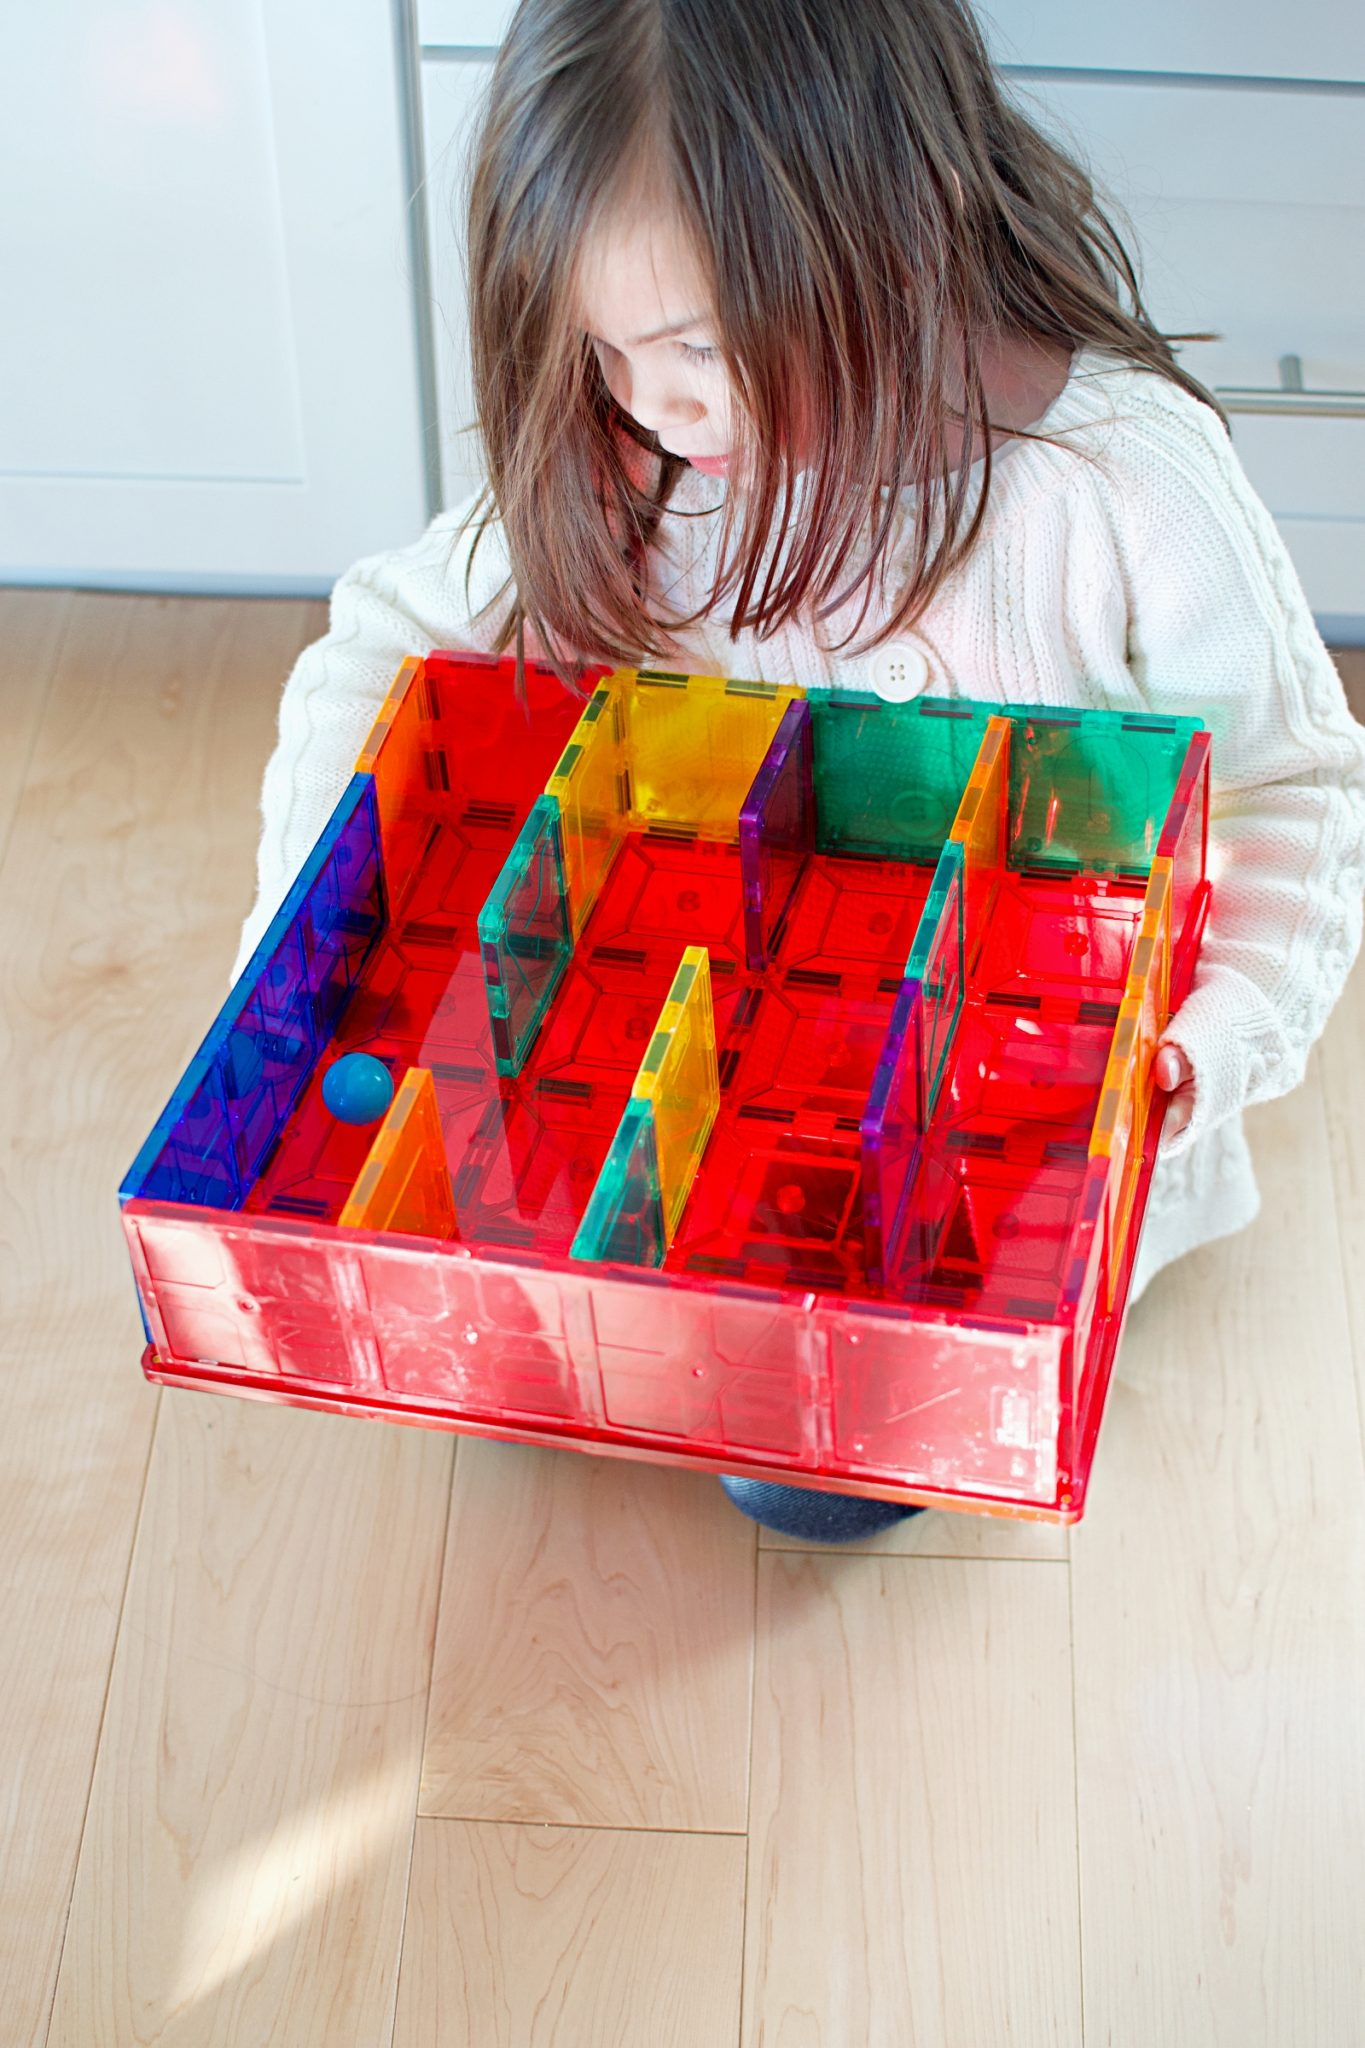 20 Ways To Play With Magnetic Tiles 2021 Entertain Your Toddler